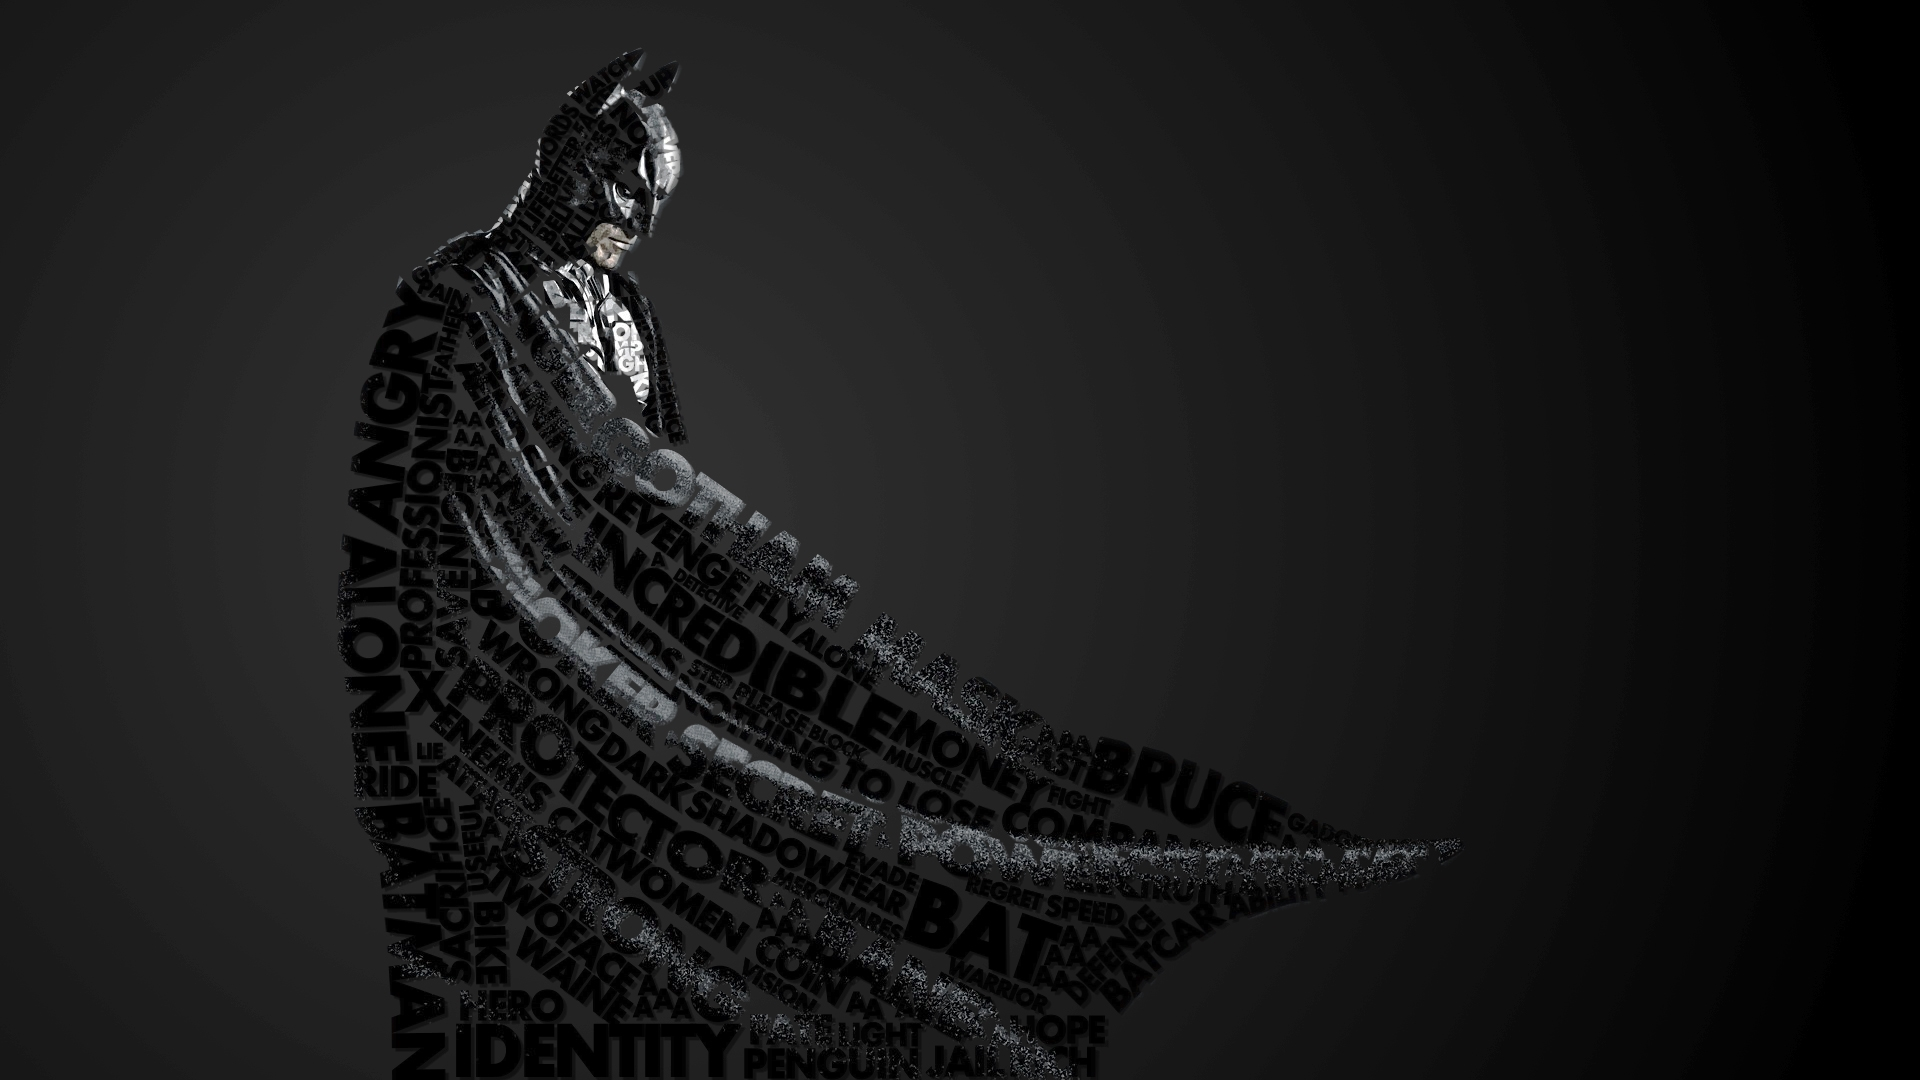 batman hd free download wallpaper